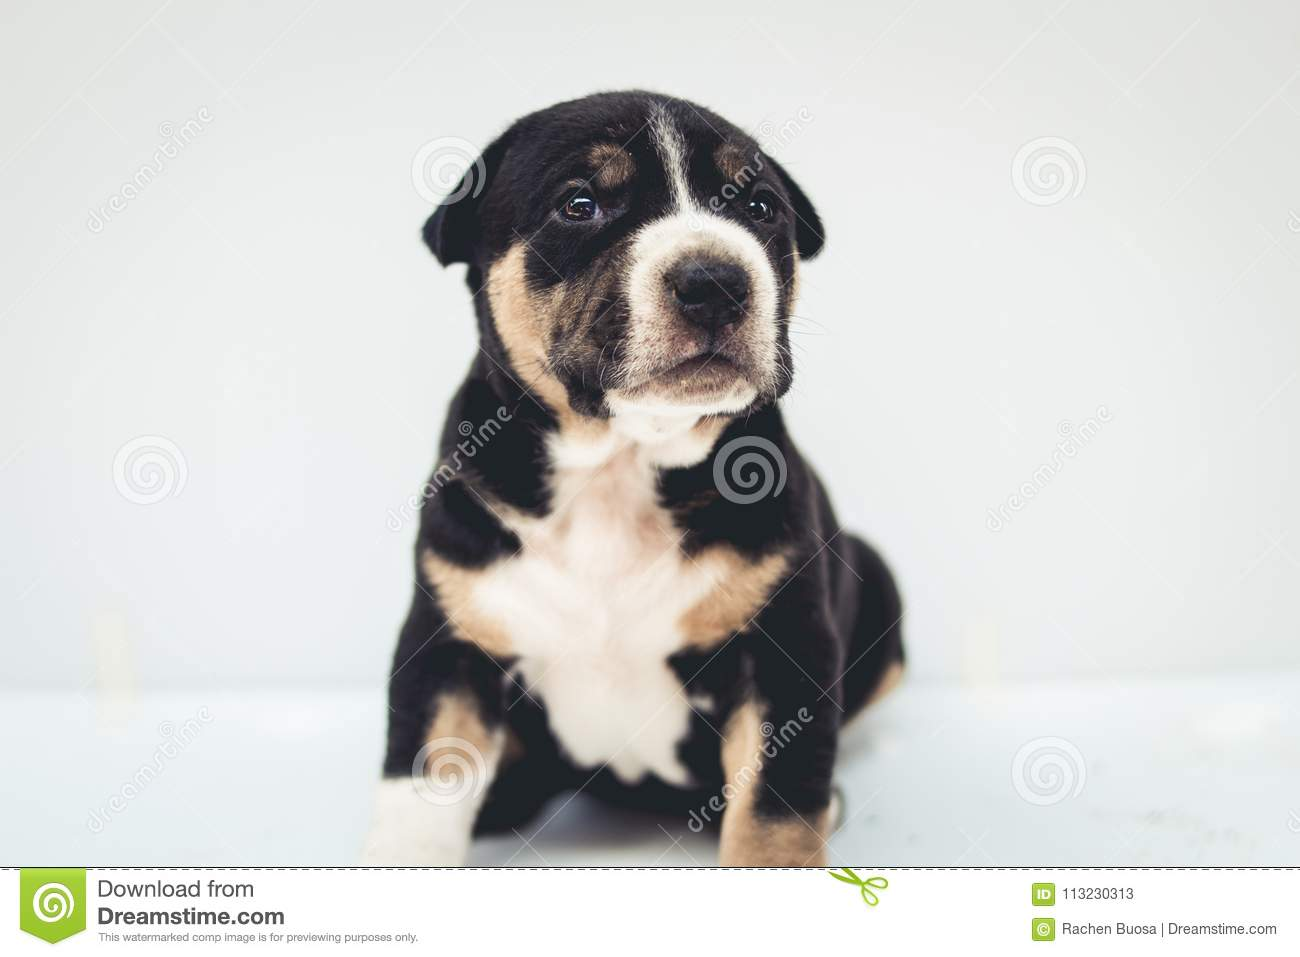 Puppies dog crossbred cute dog isolated